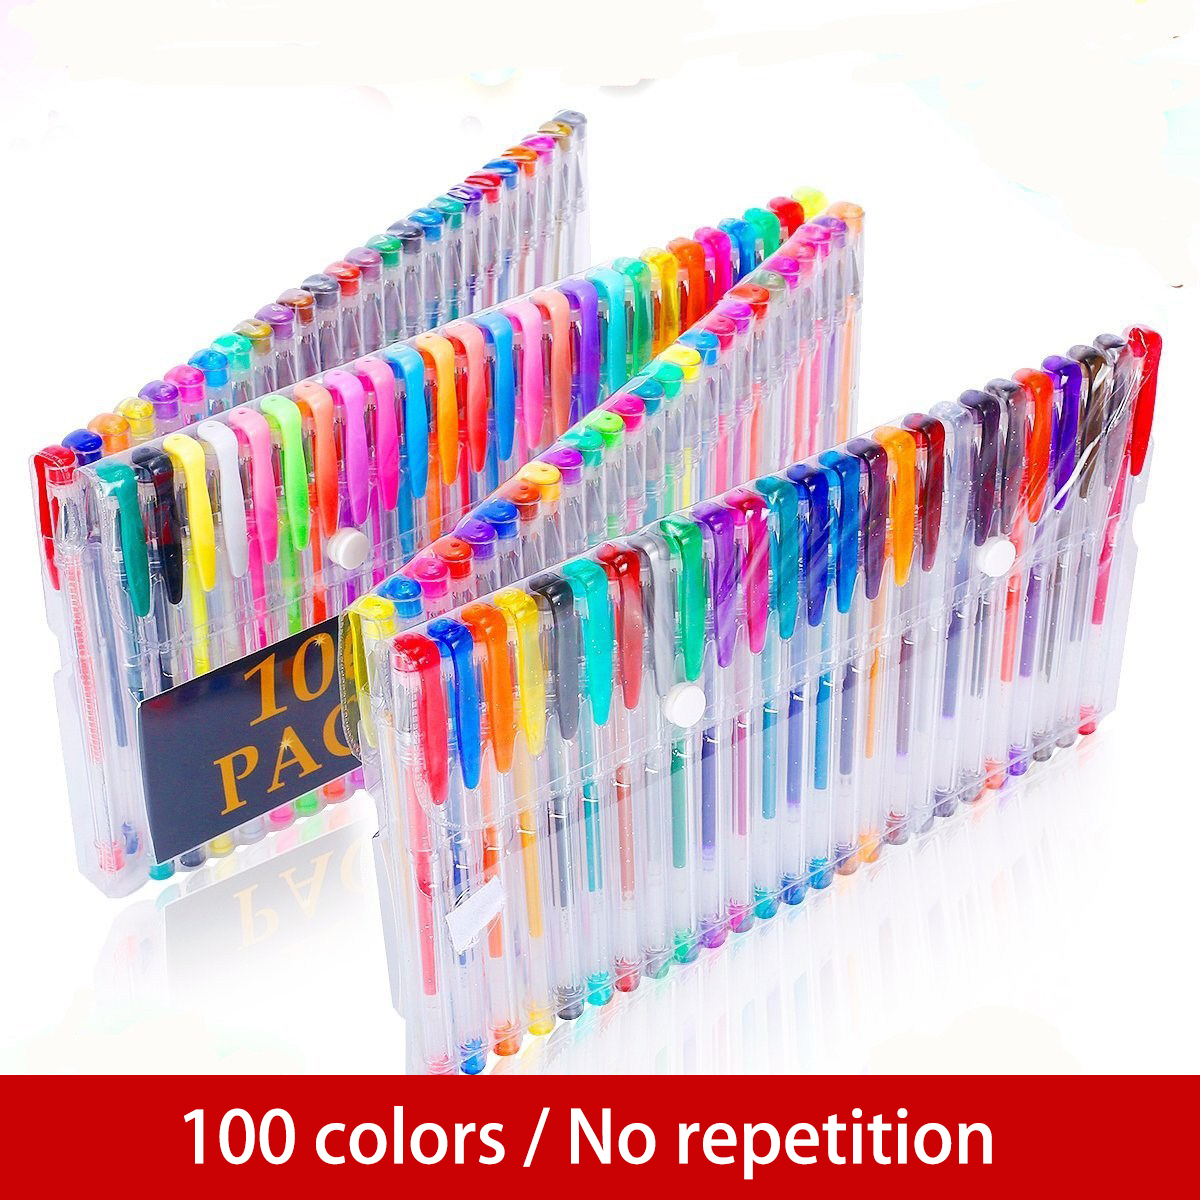 100 Colors Gel Pen Set Sketching Drawing Color Pens For School Office Stationery Metallic Pastel Neon Glitter Gel Pens